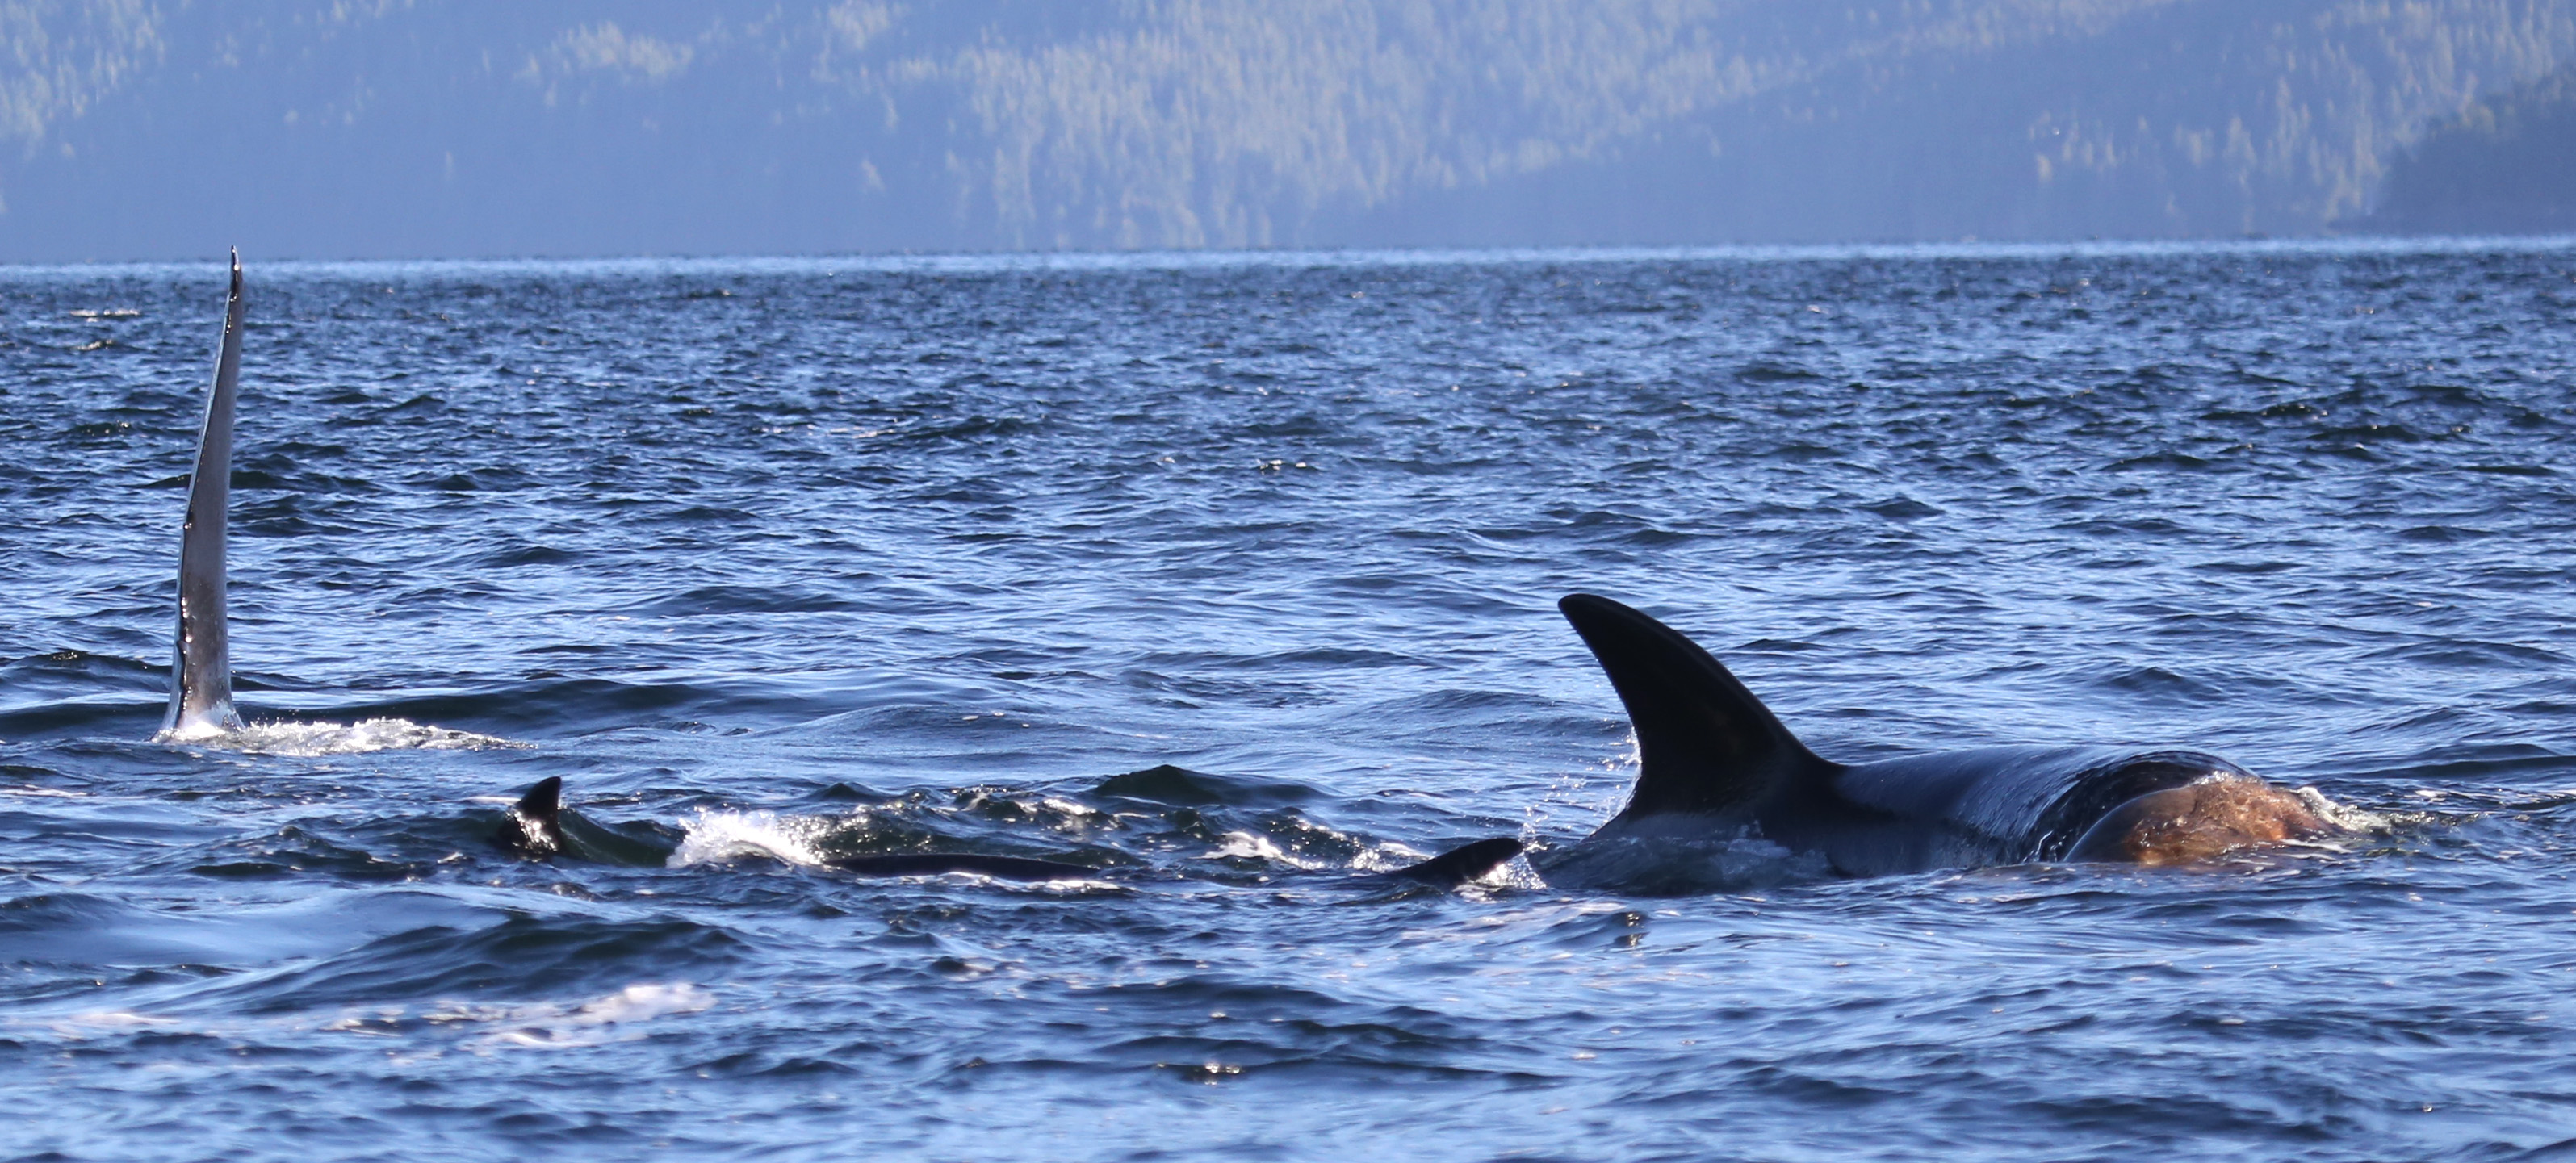 Orcas and sea lion. Photo: © Janie Wray